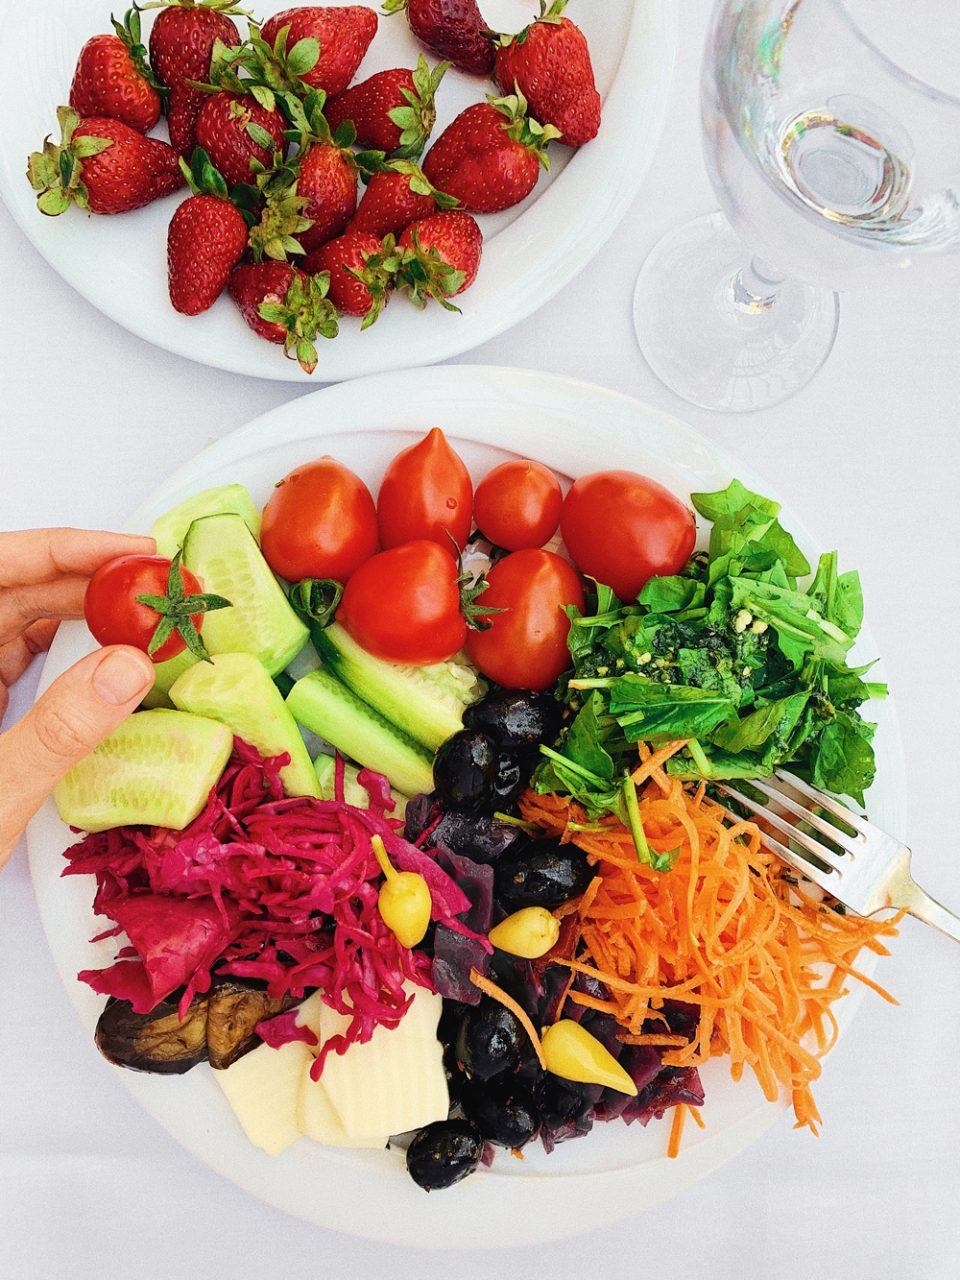 10 principles of healthy eating for beginners